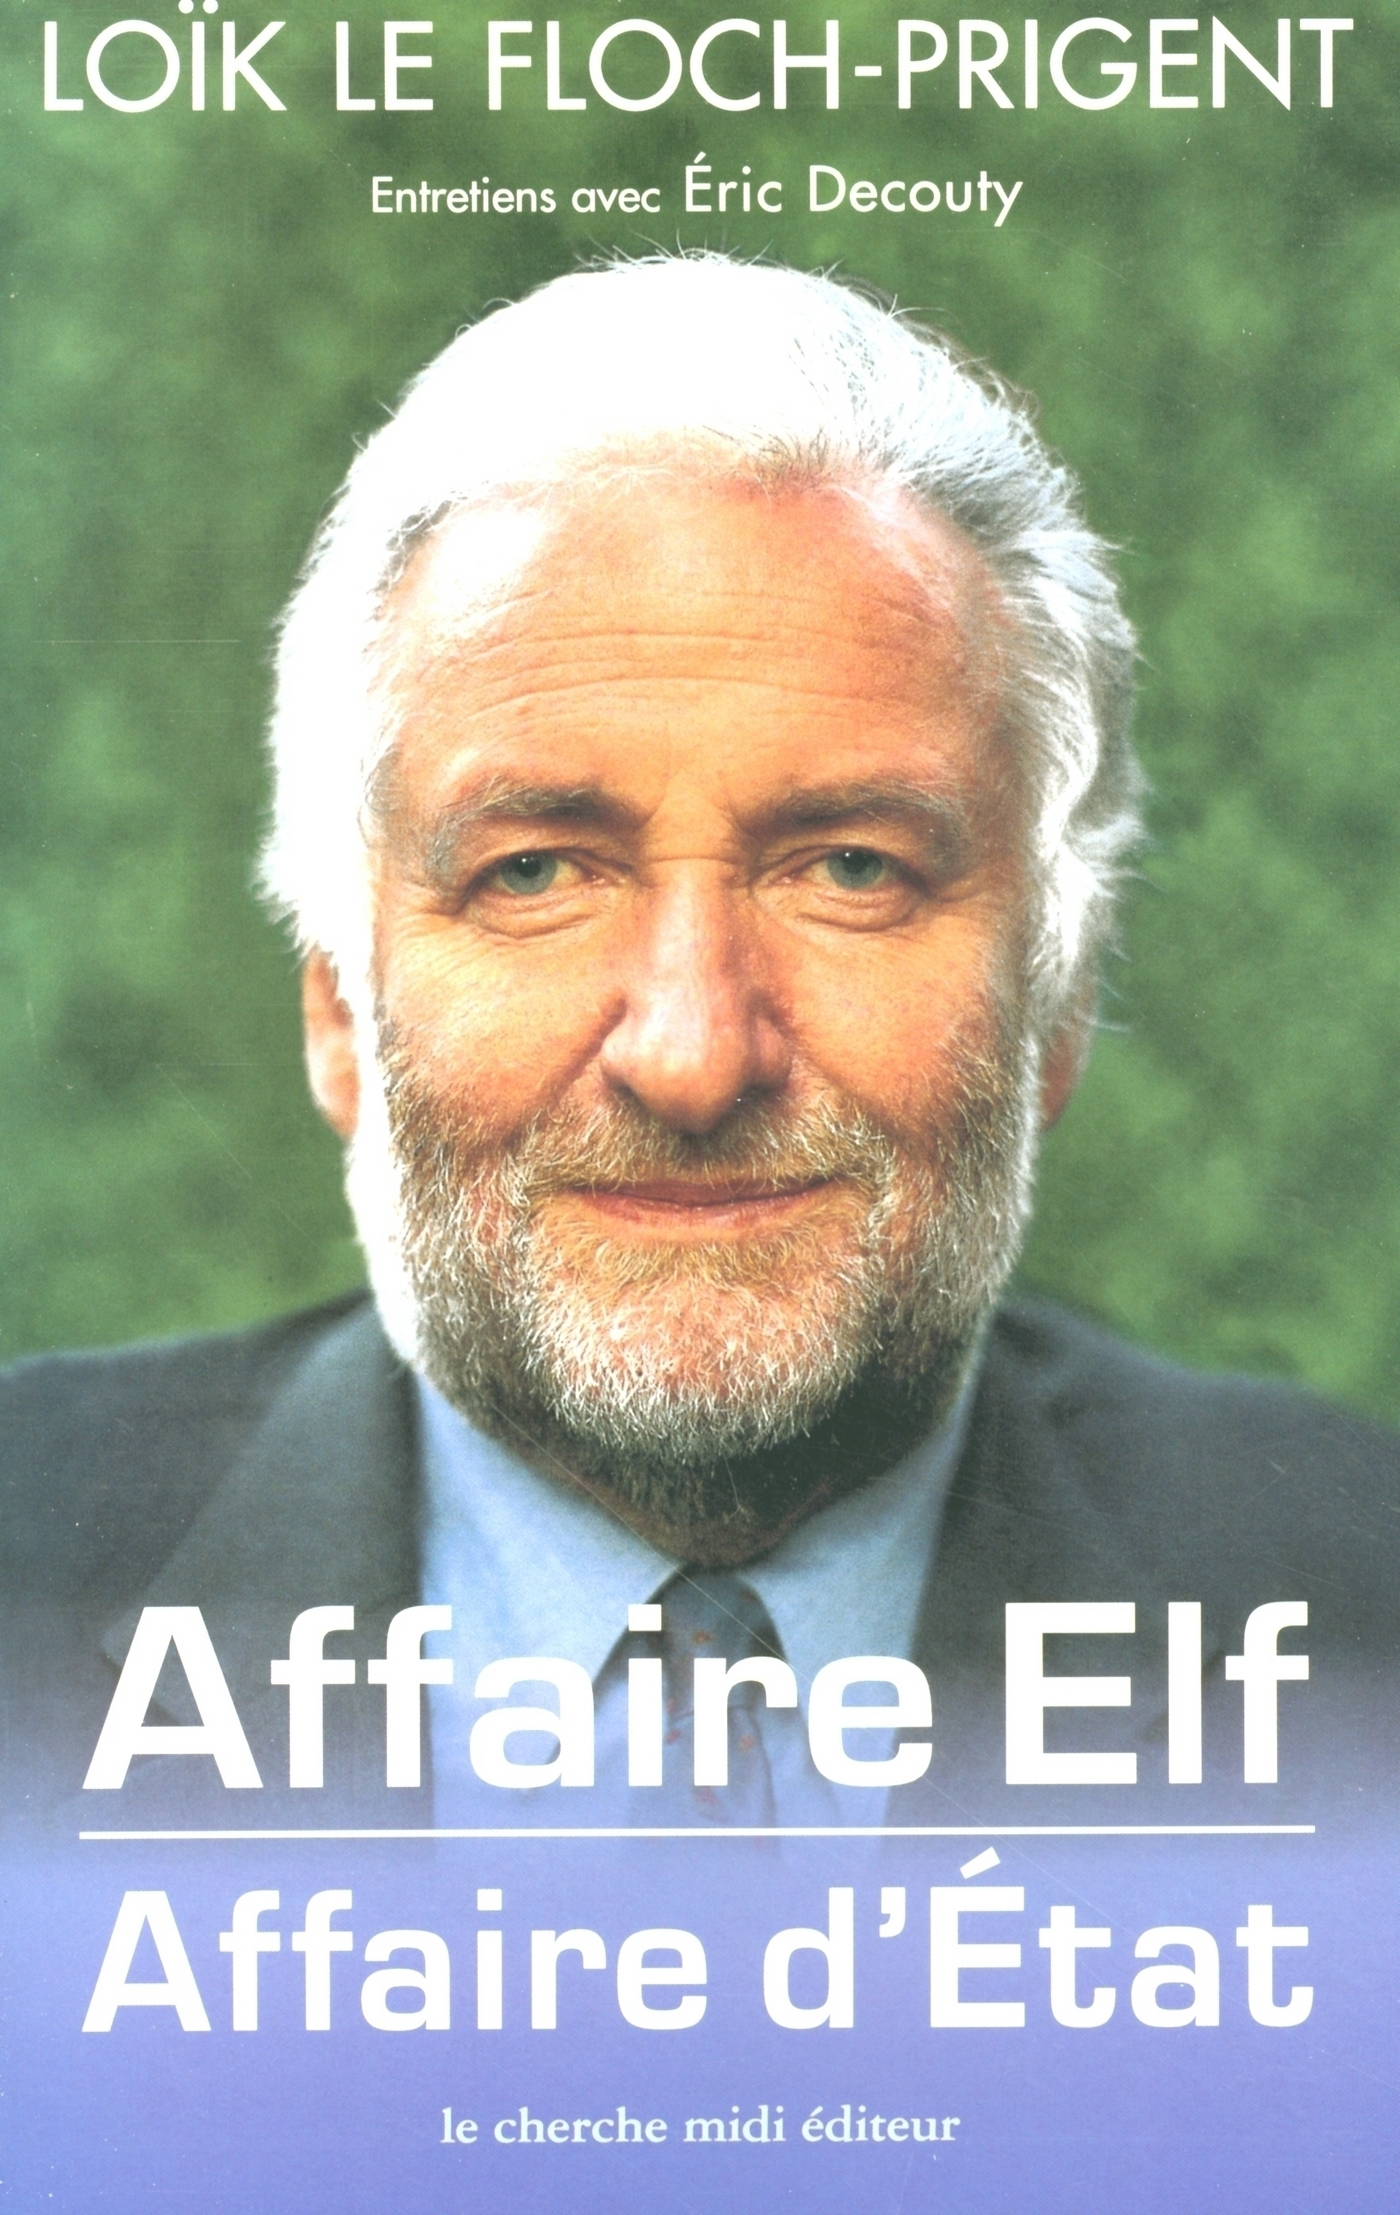 Affaire Elf, affaire d'État